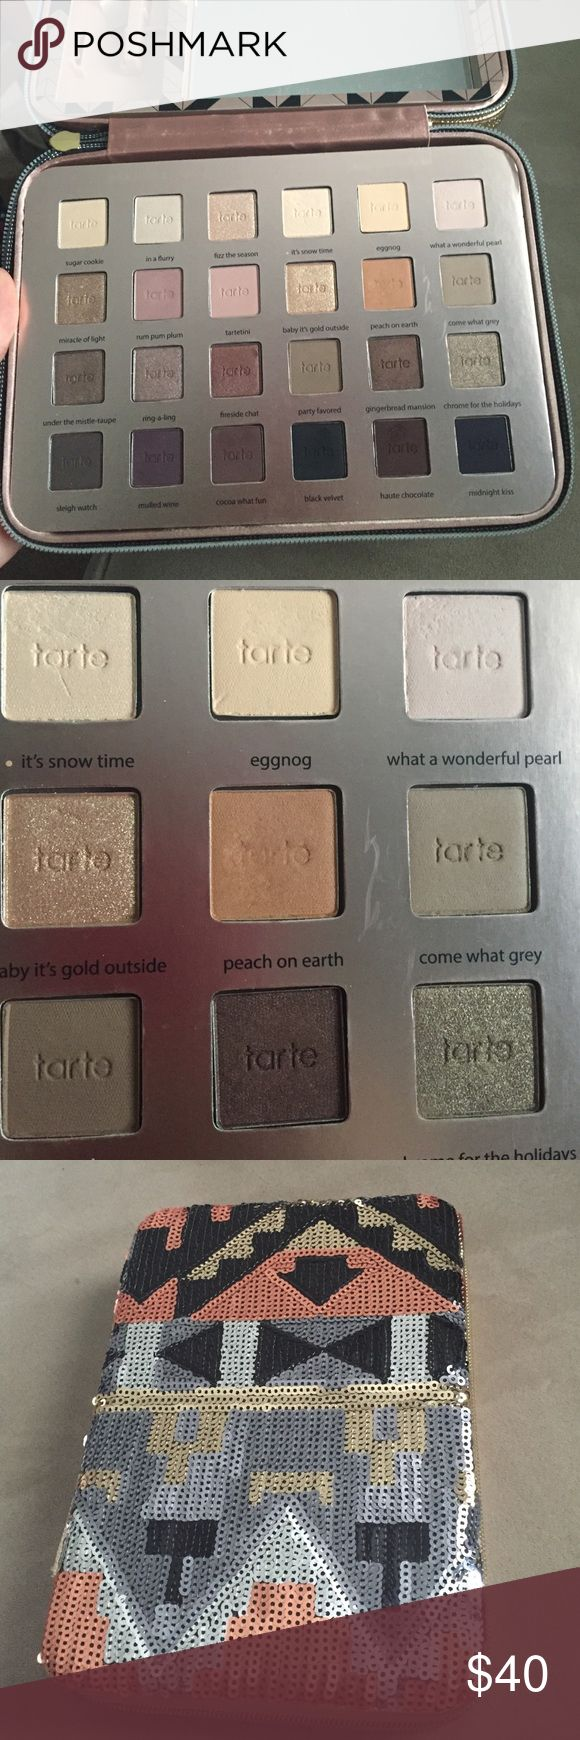 Tarte holiday palette Tarte 2015 holiday palette. Few shades swatched, one used (as pictured above). Just the eyeshadows are included, the small palette lip color and mascara not included. tarte Makeup Eyeshadow